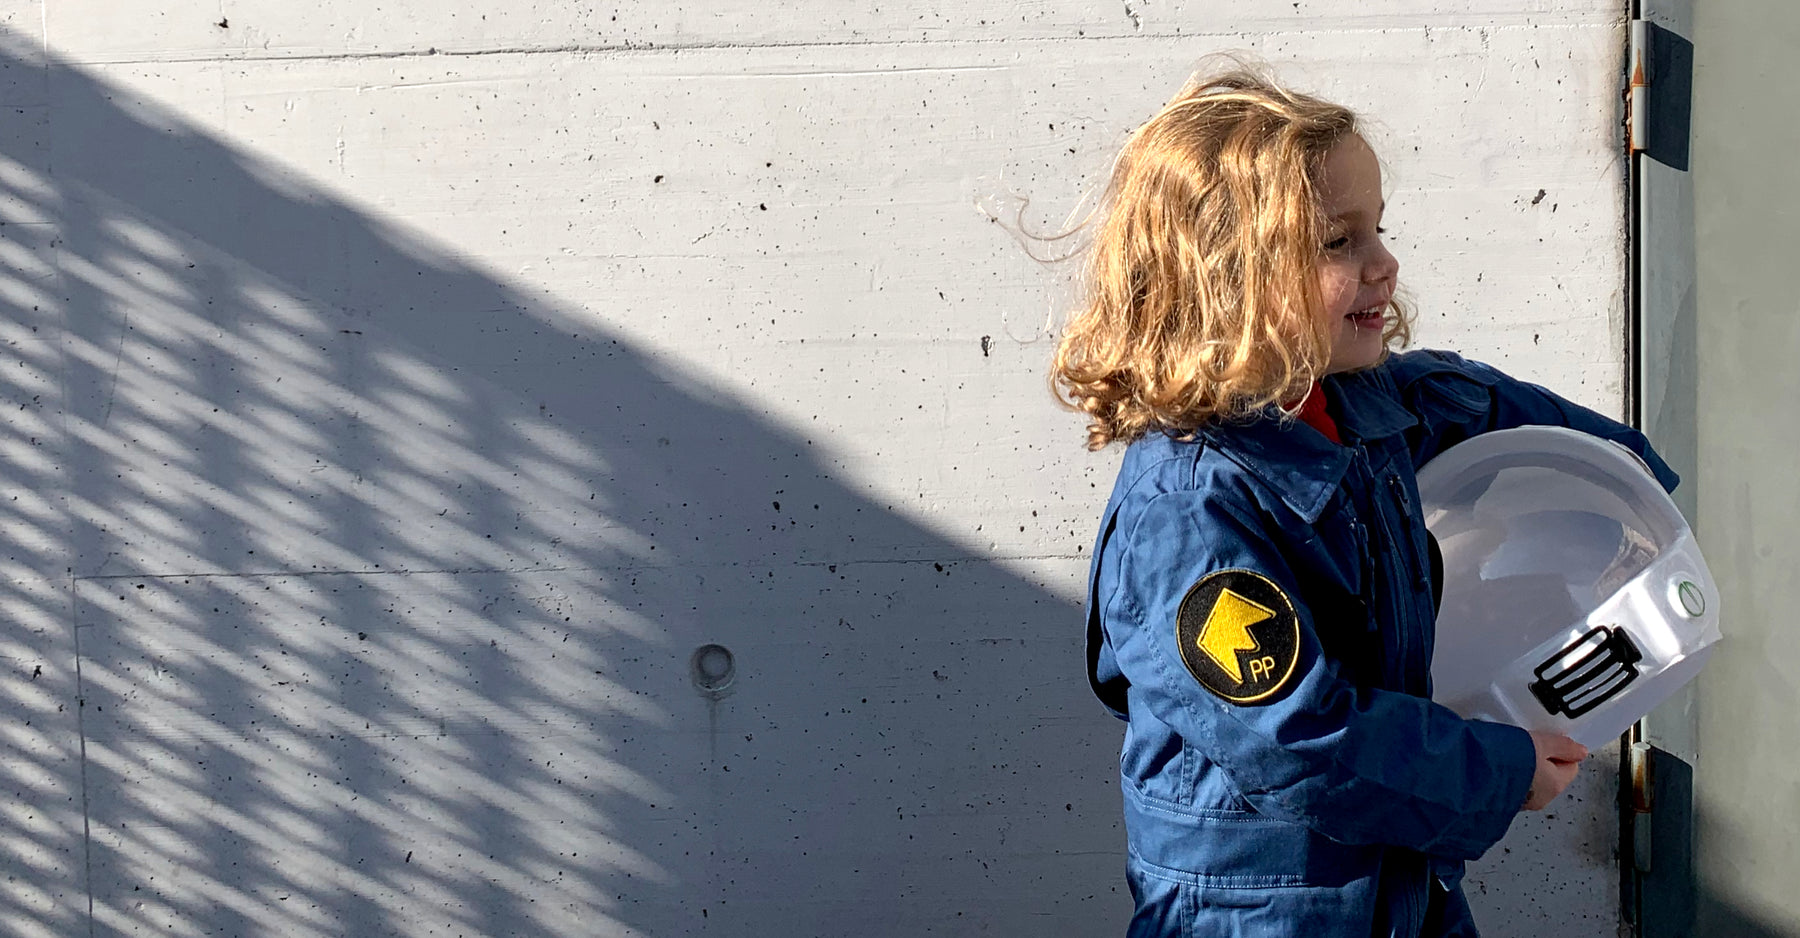 FUTURE ASTRONAUT'S FIRST SPACE SUIT